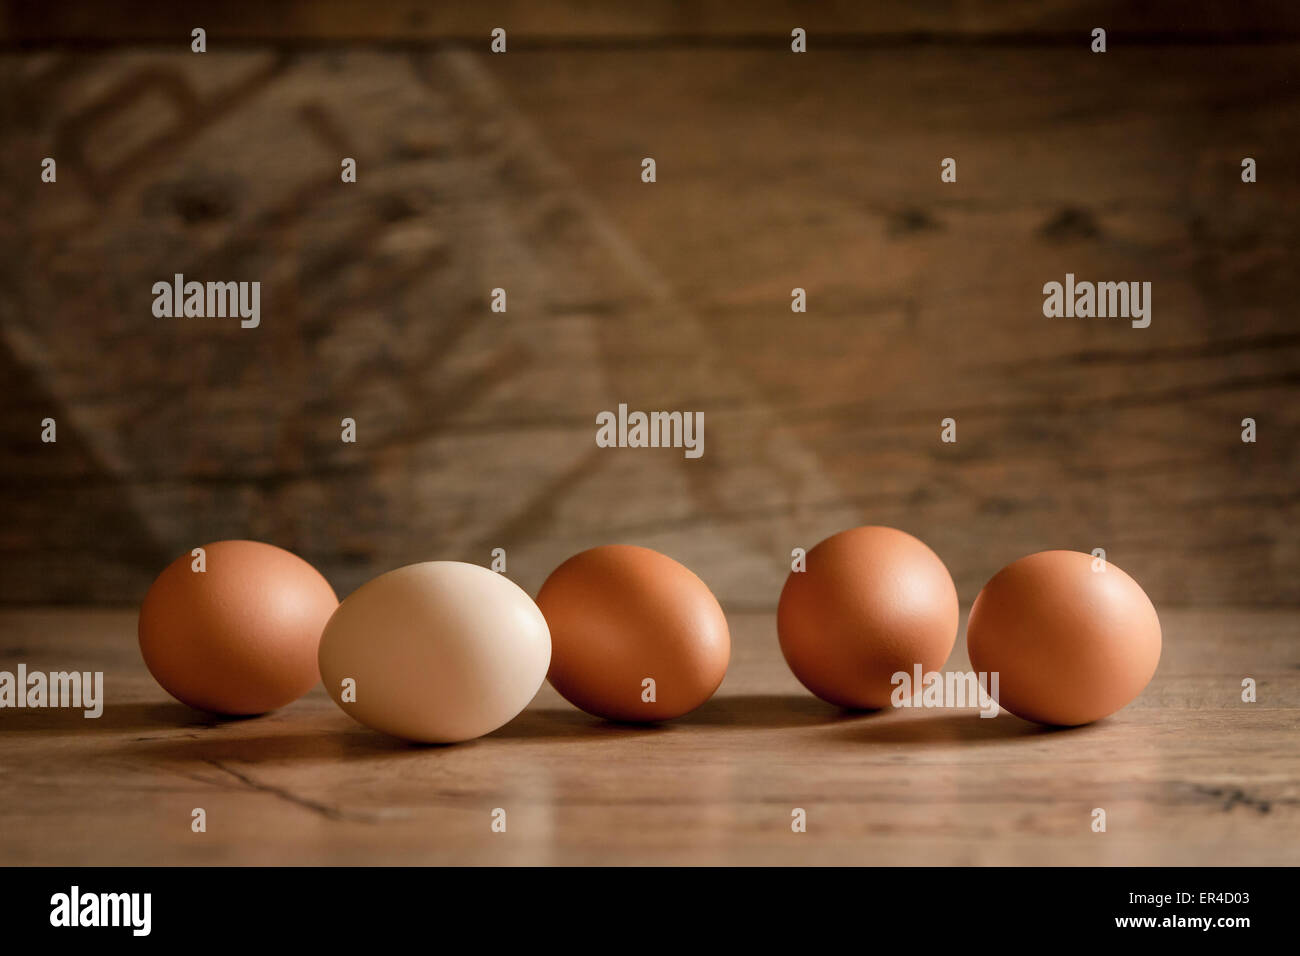 Eggs on a wooden table - Stock Image